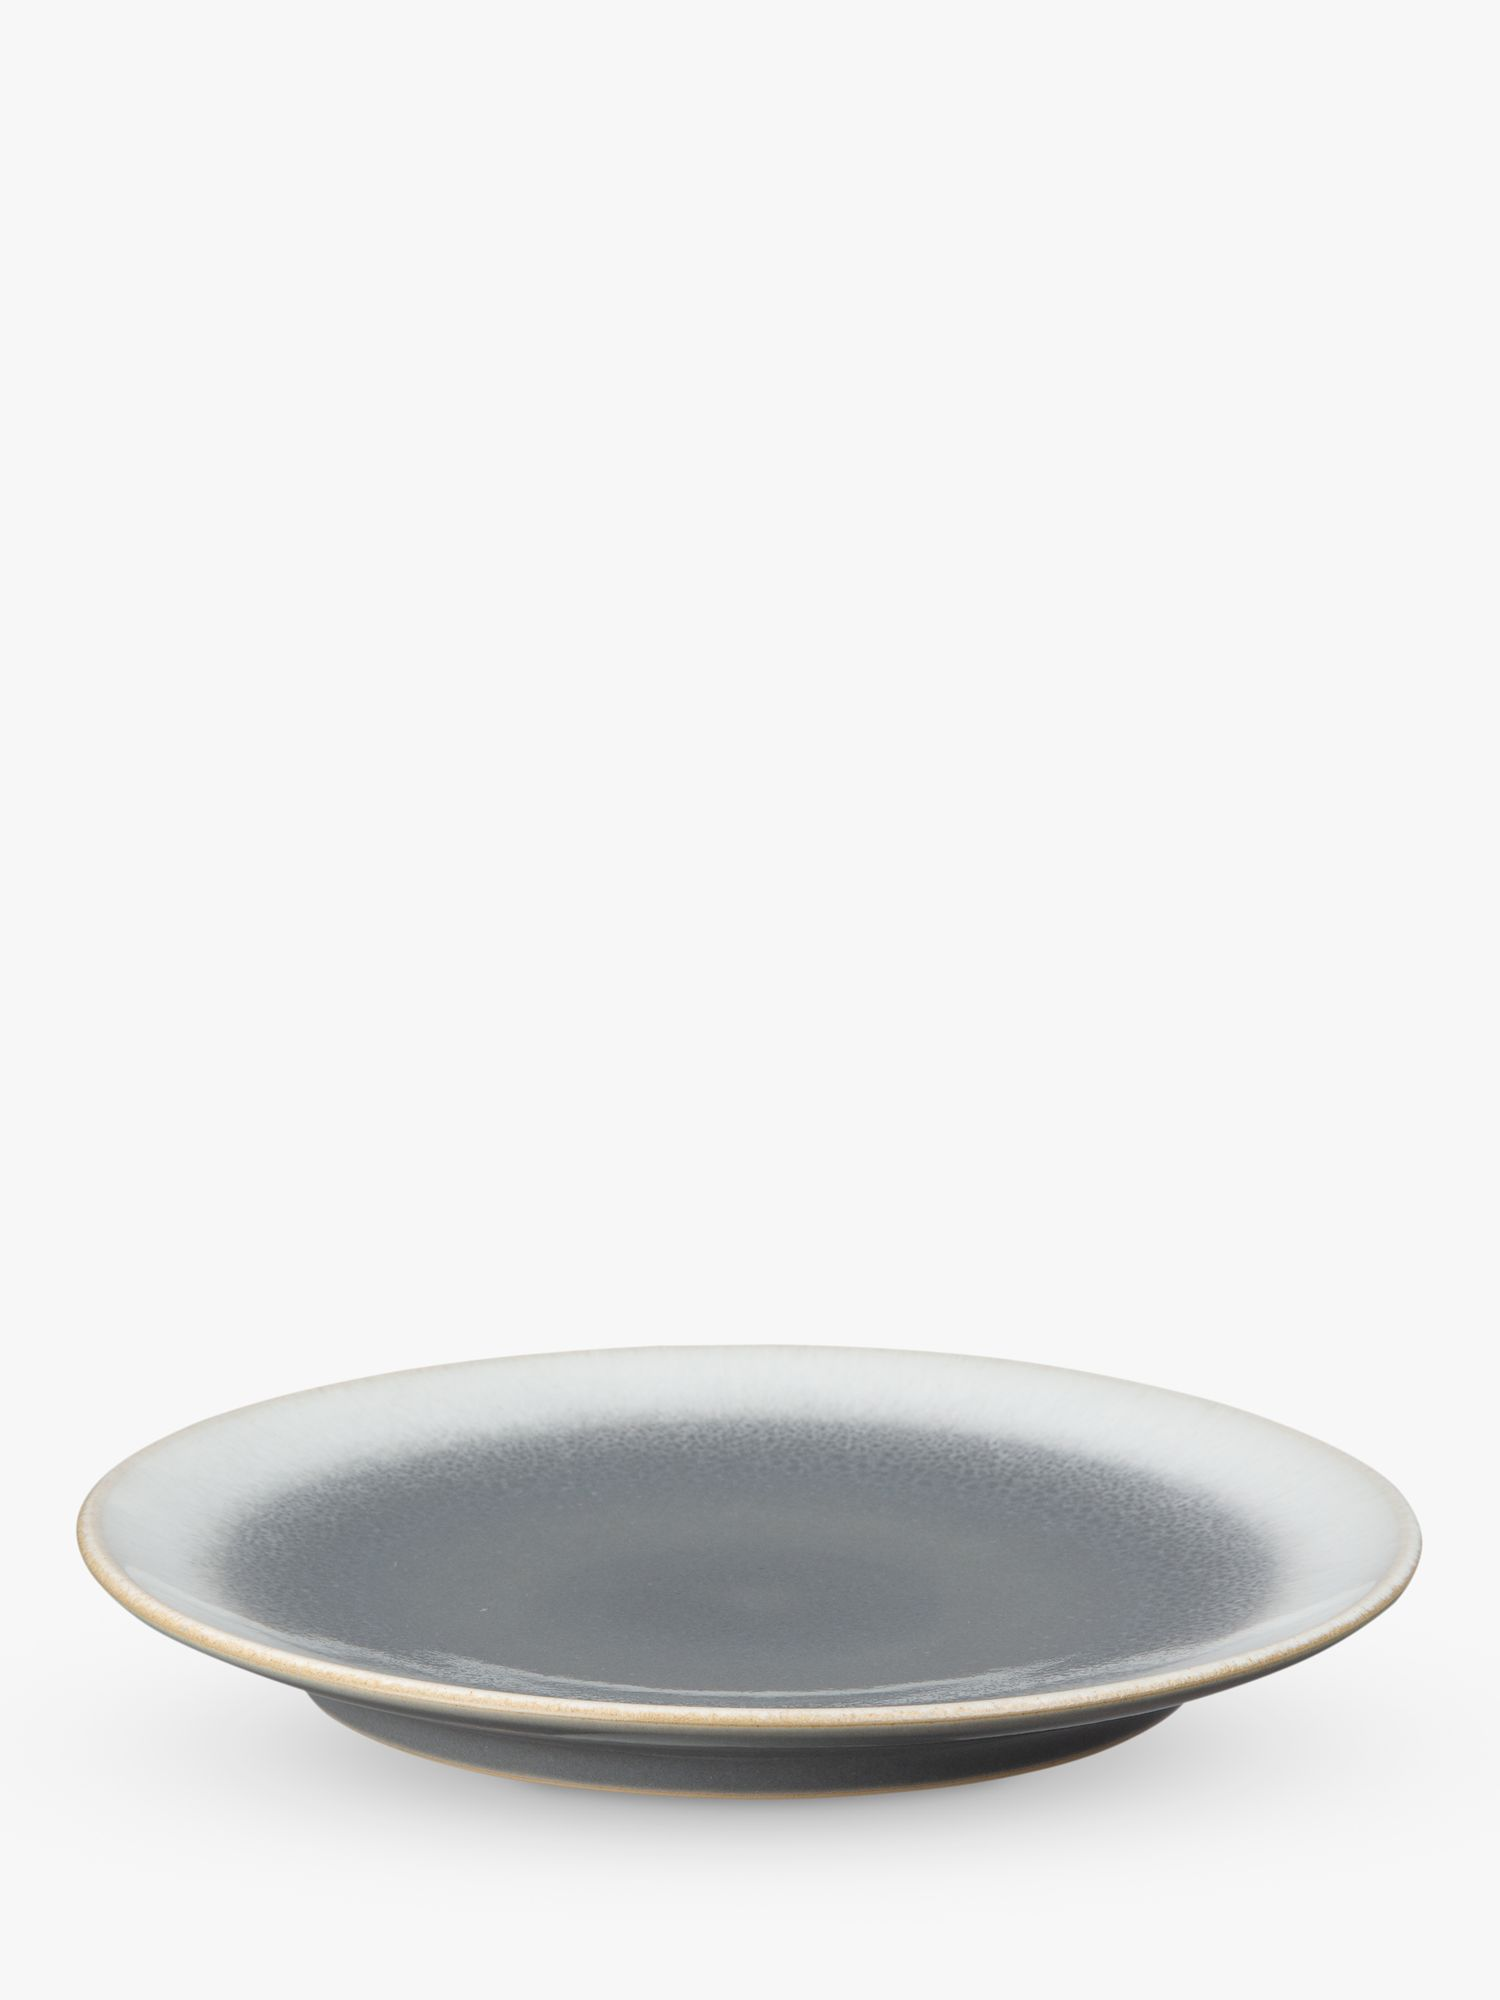 Denby Denby Modus Ombre Curved Medium Plate, 22cm, Natural